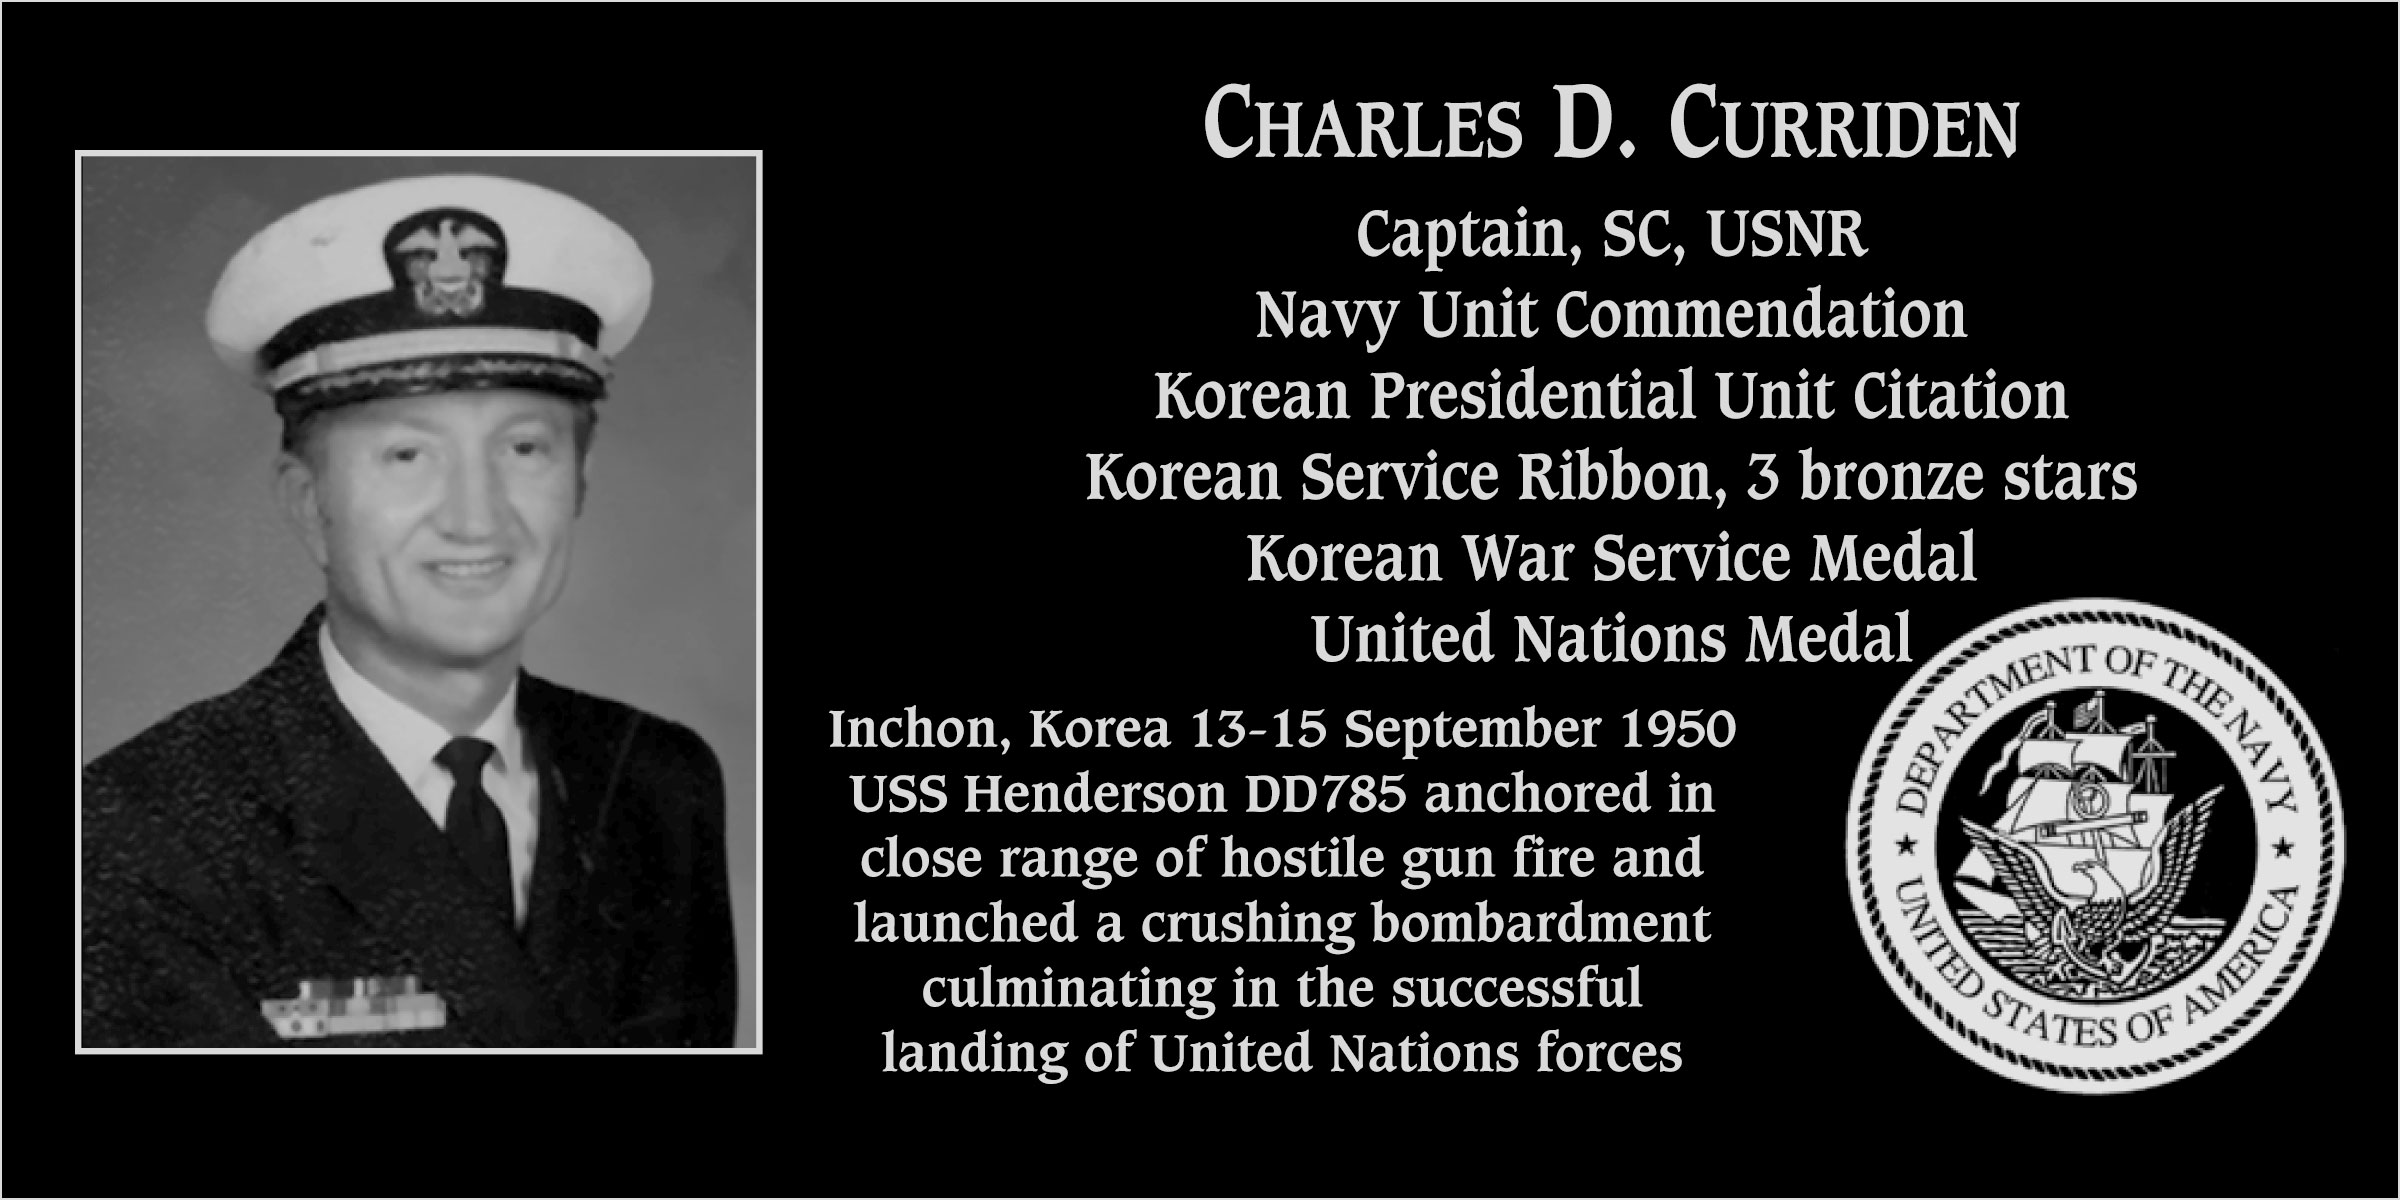 Charles D. Curriden